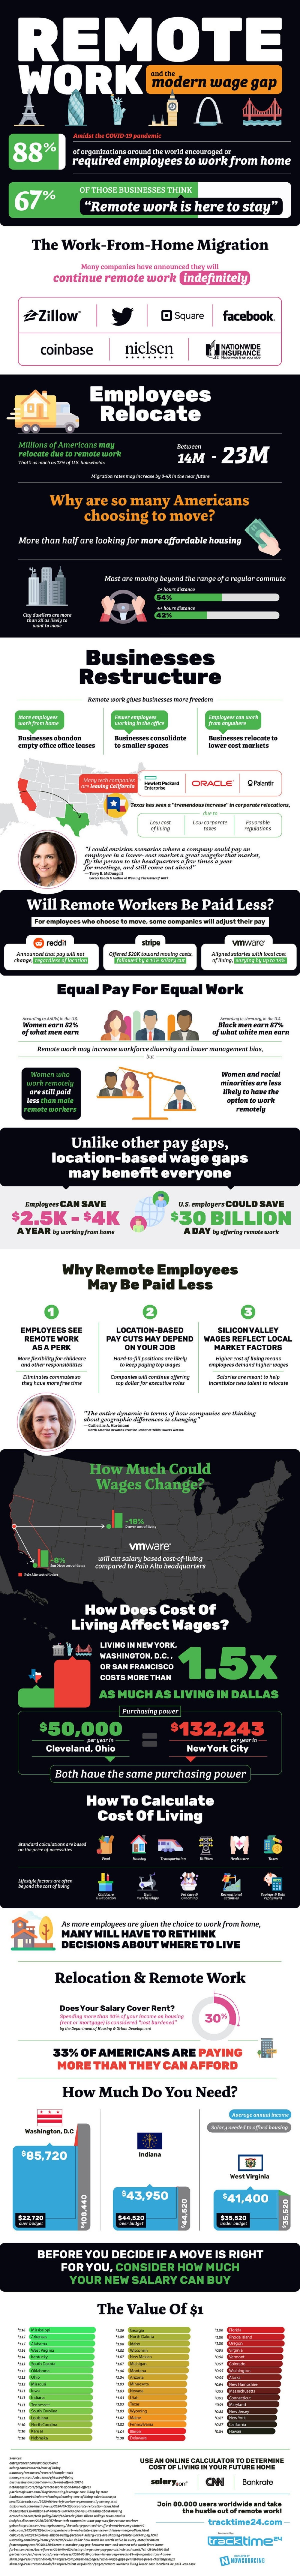 remote-work-and-the-modern-wage-gap-infographic